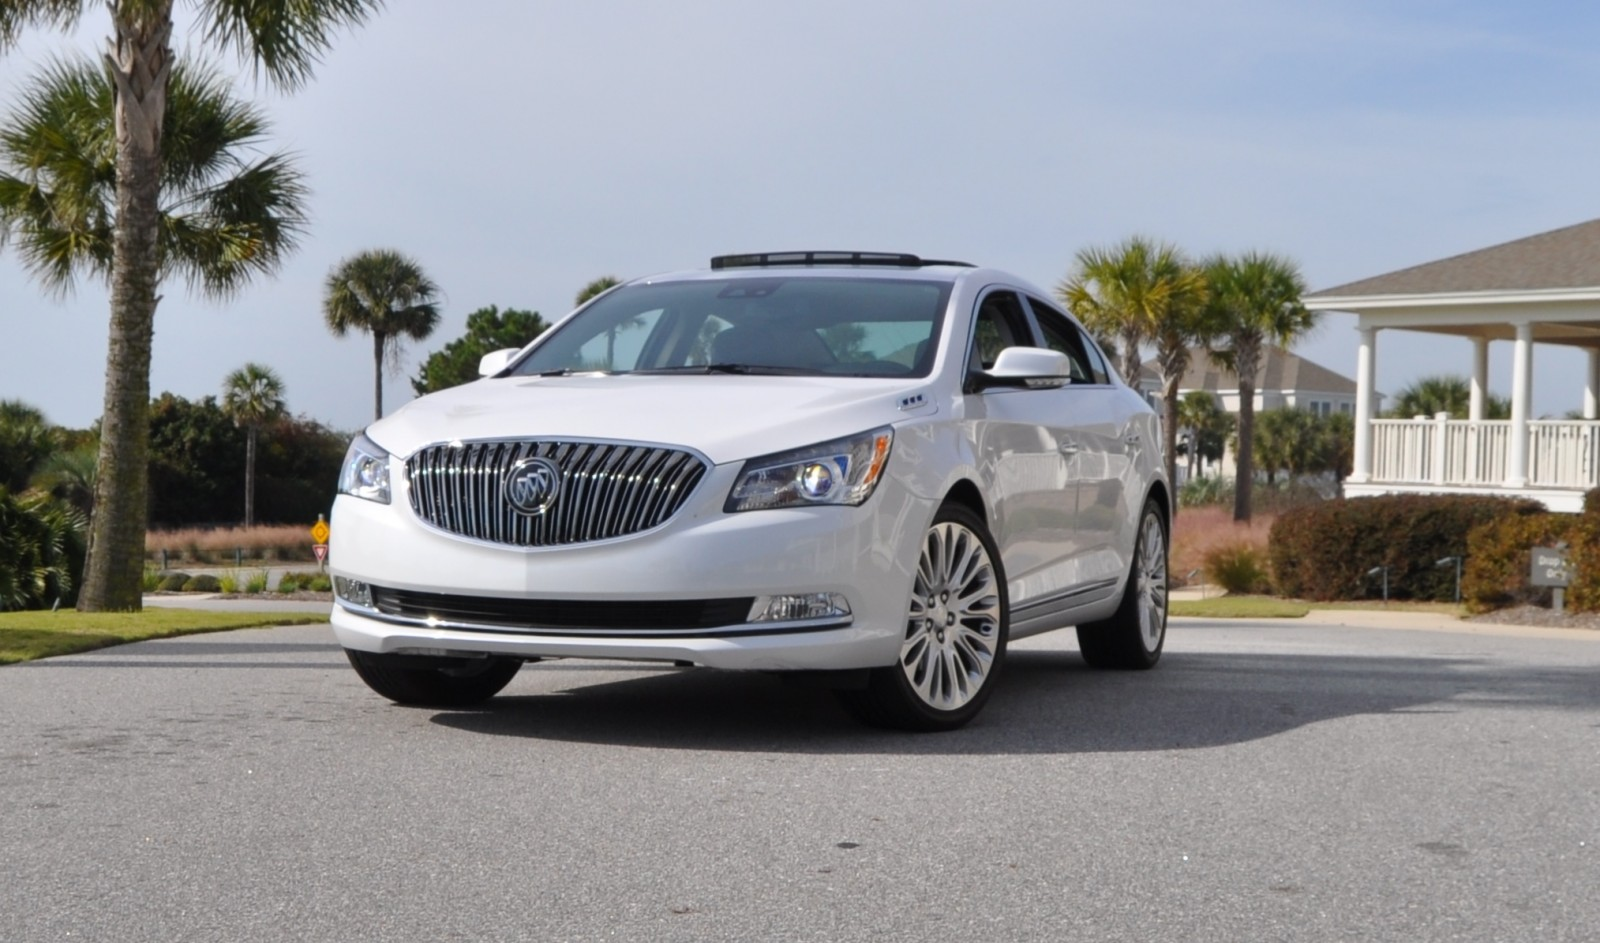 Original No Its Not Not Like Any Buick From The Past  But Laying A